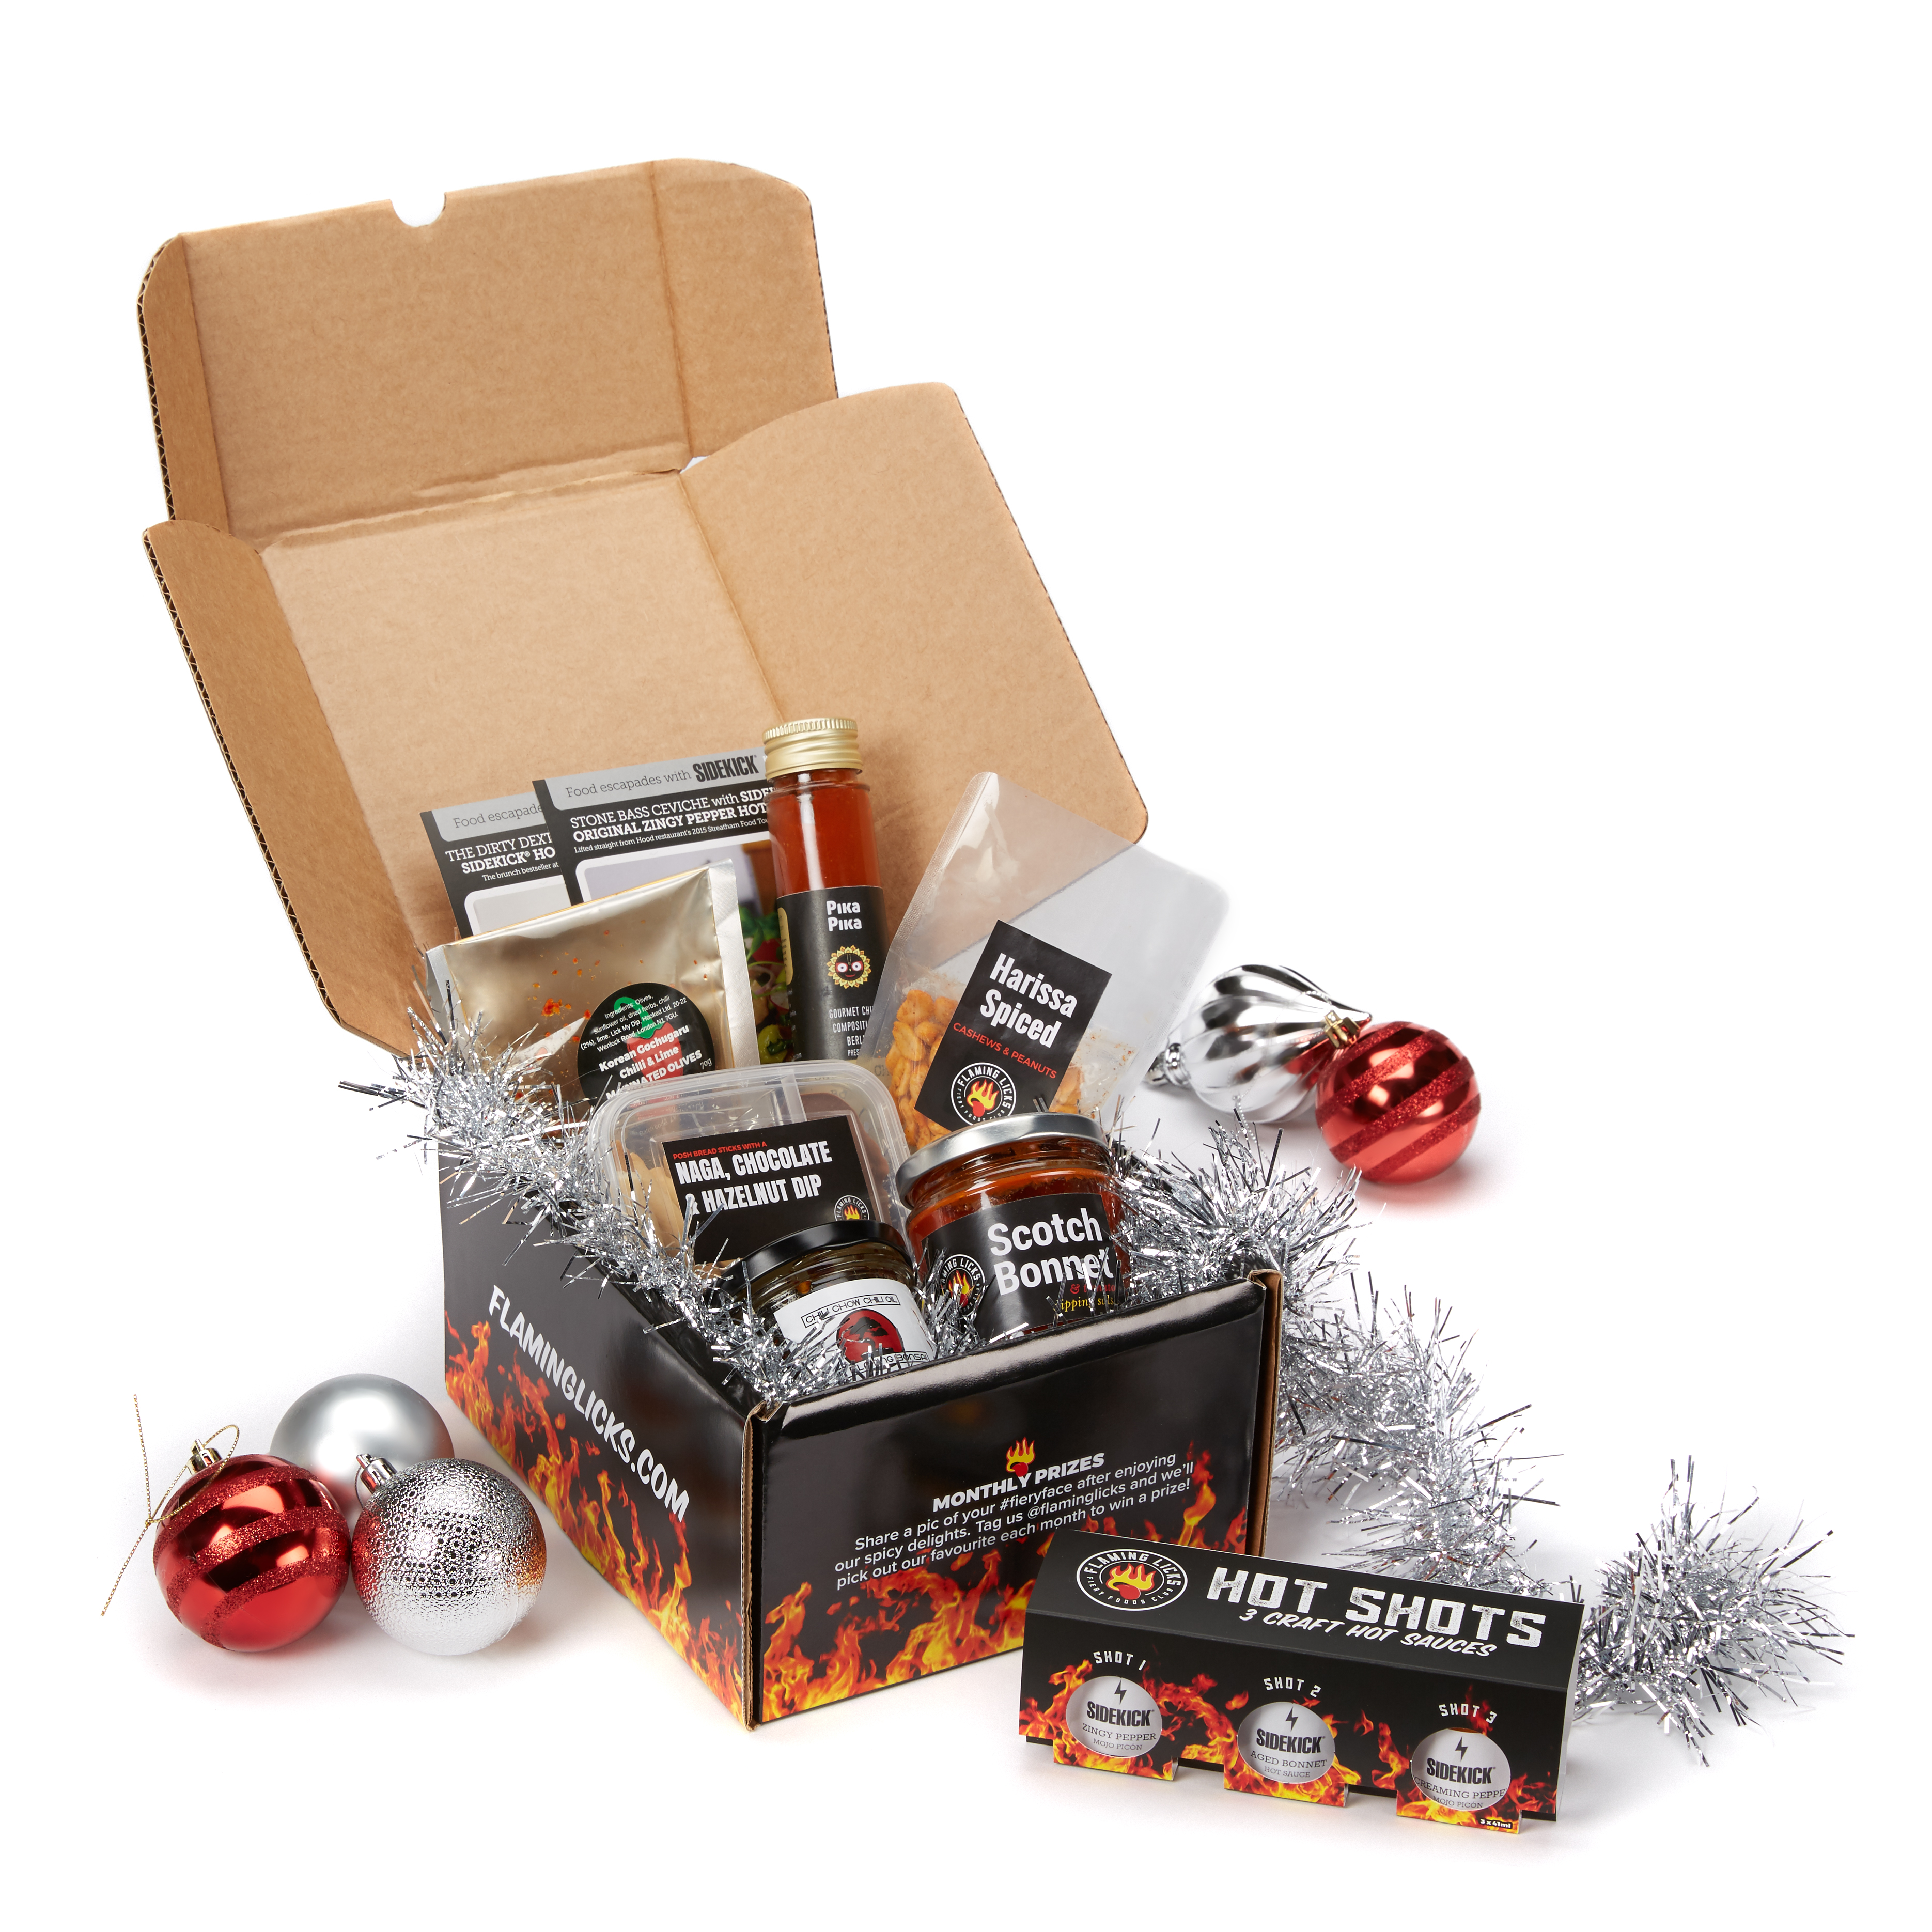 FIERY CHRISTMAS FOODIE GIFTS FROM FLAMING LICKS!